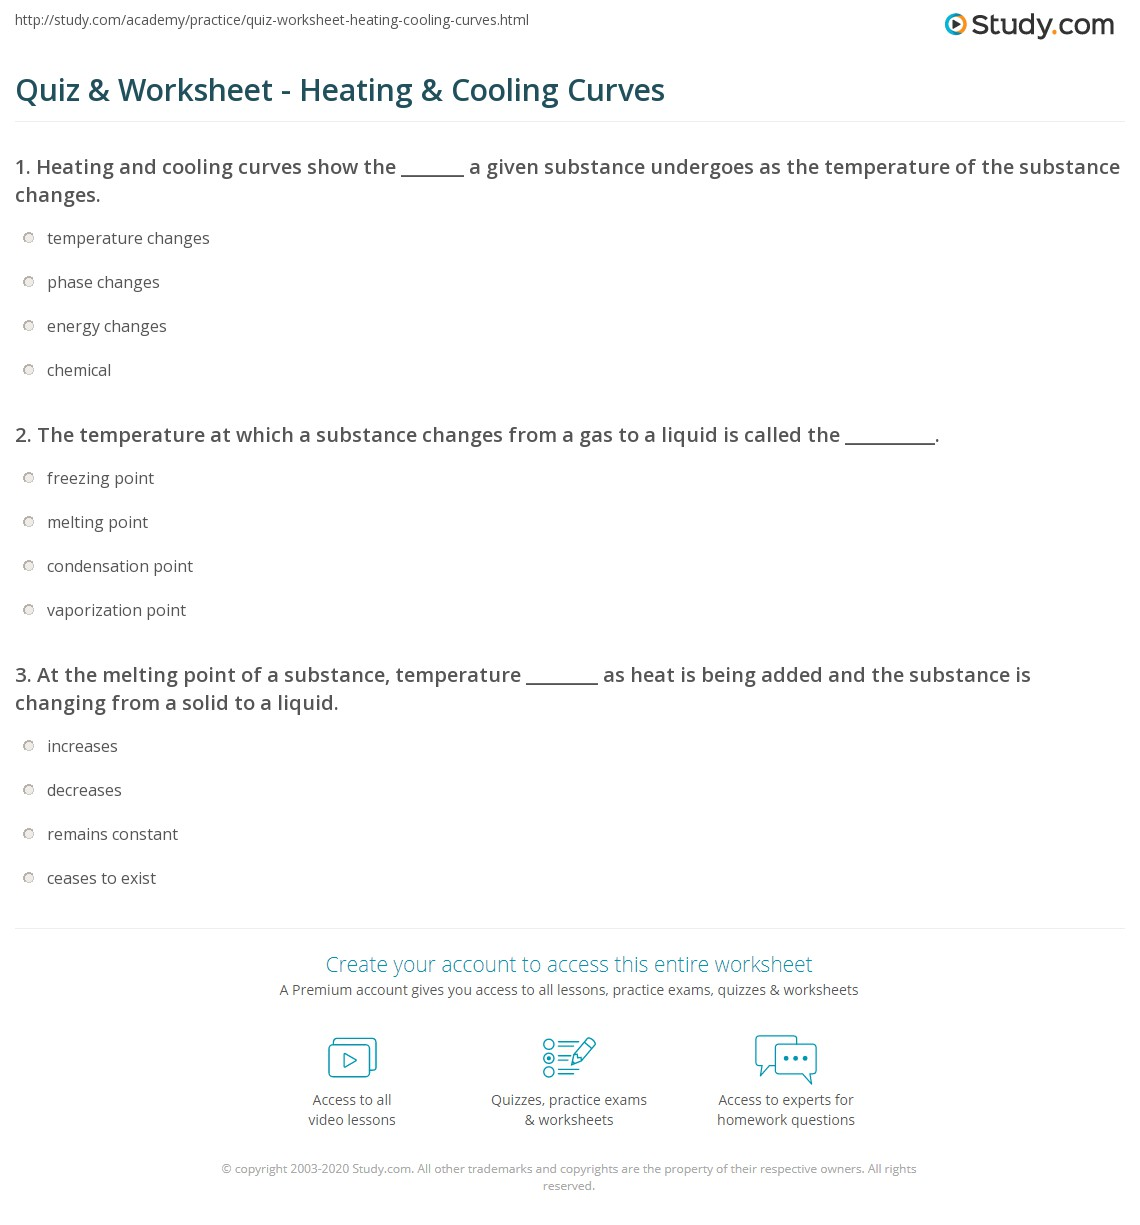 Quiz & Worksheet - Heating & Cooling Curves | Study.com